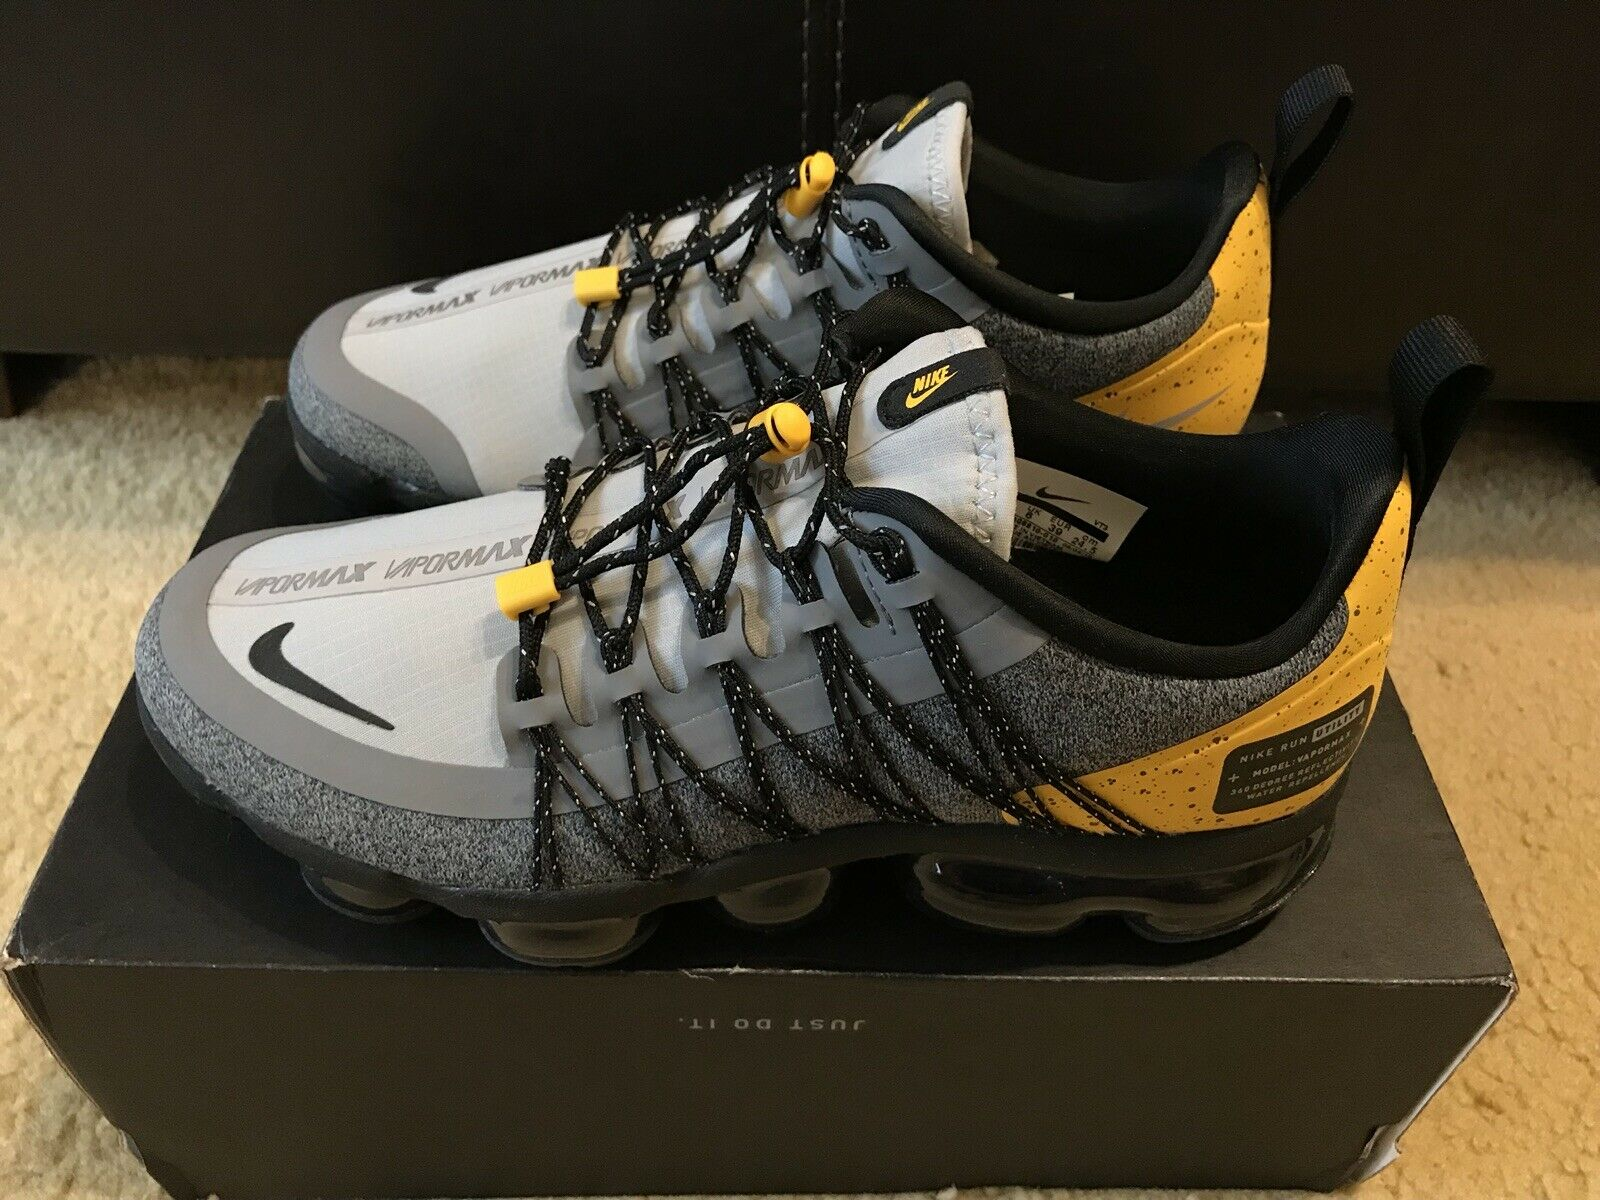 3dcb97e1e2 Nike Air Vapormax Run sz 6.5 Wolf Grey Black yellow AQ8810-010 Utility  Men's ntifcr6151-Athletic Shoes